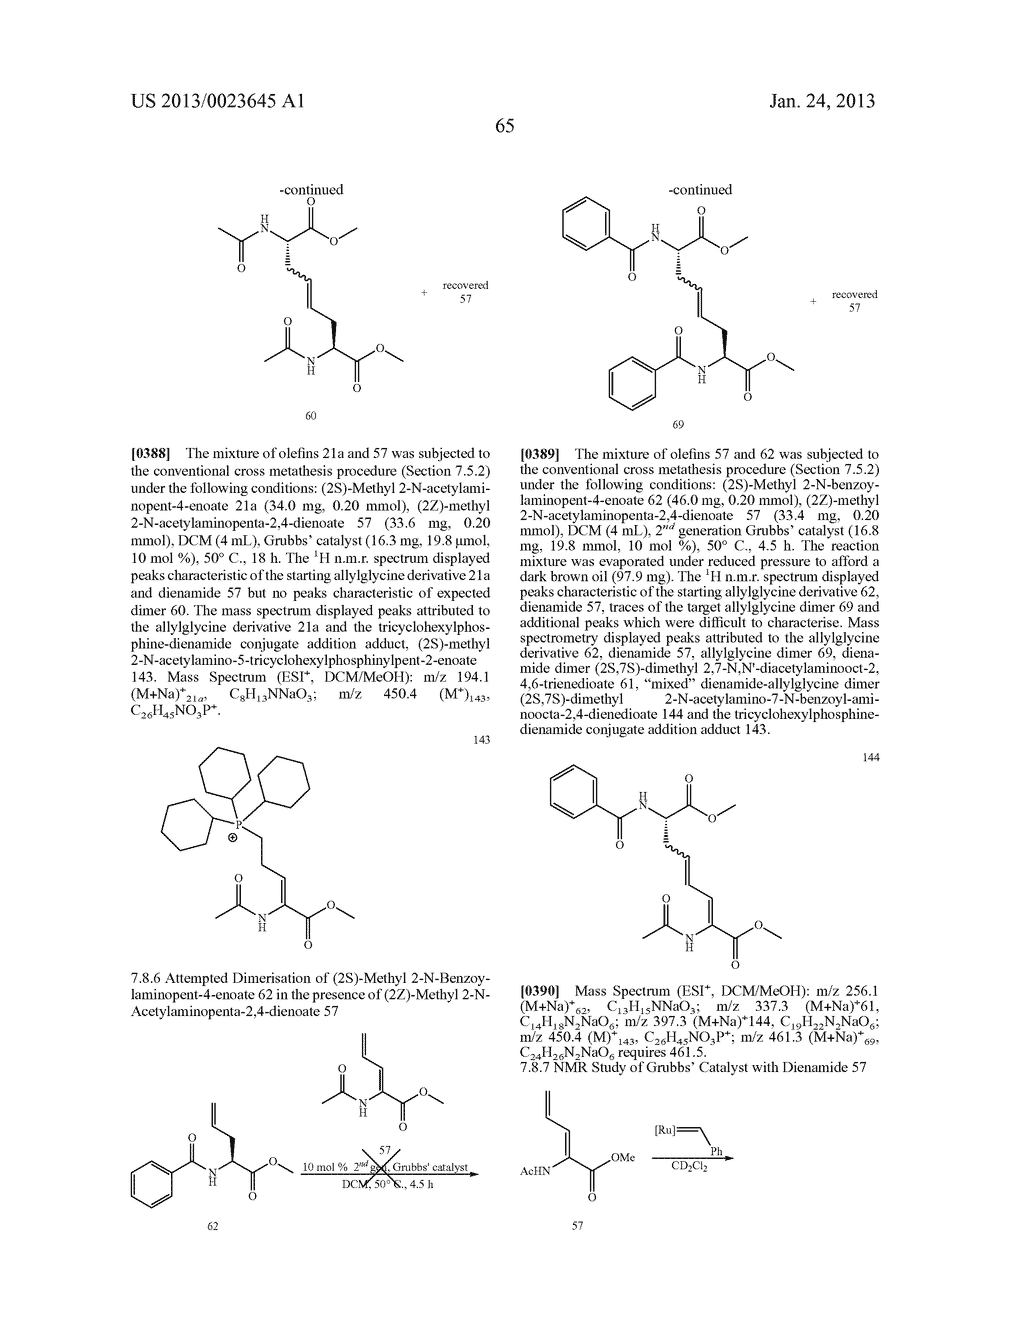 METHODS FOR THE SYNTHESIS OF DICARBA BRIDGES IN ORGANIC COMPOUNDS - diagram, schematic, and image 70